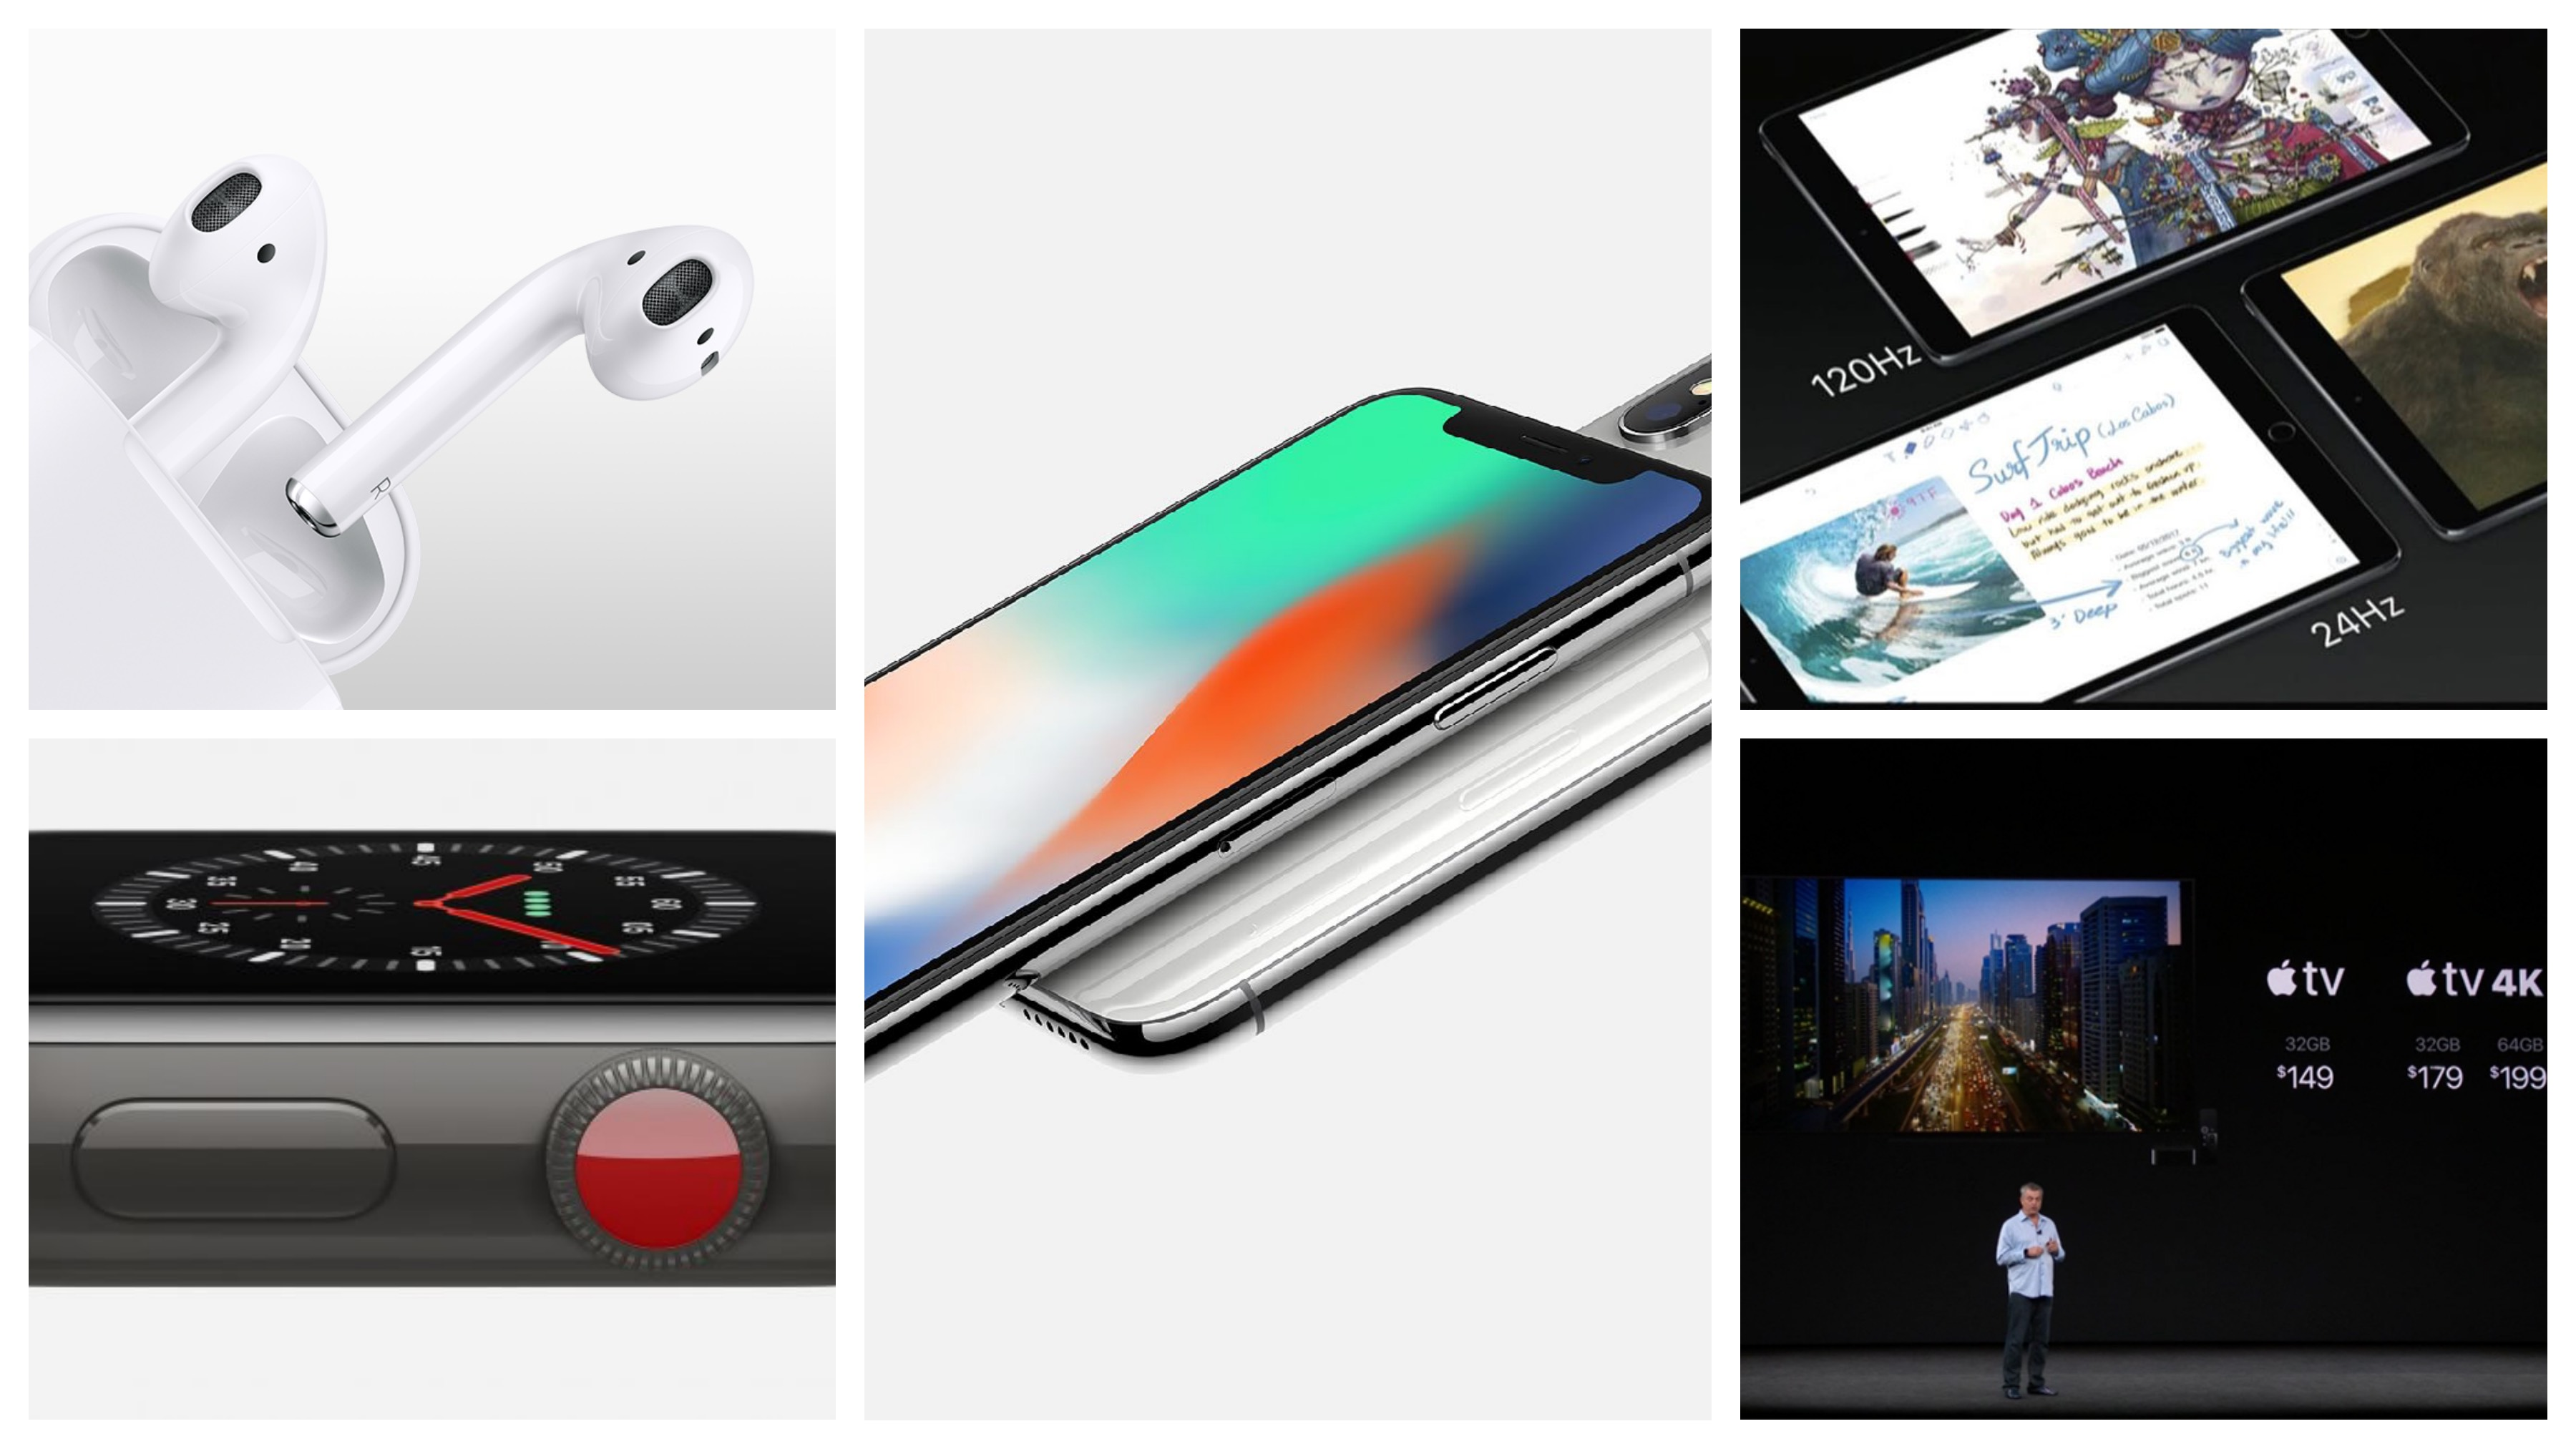 #5 Apple Product You Can Gift This Holiday Season